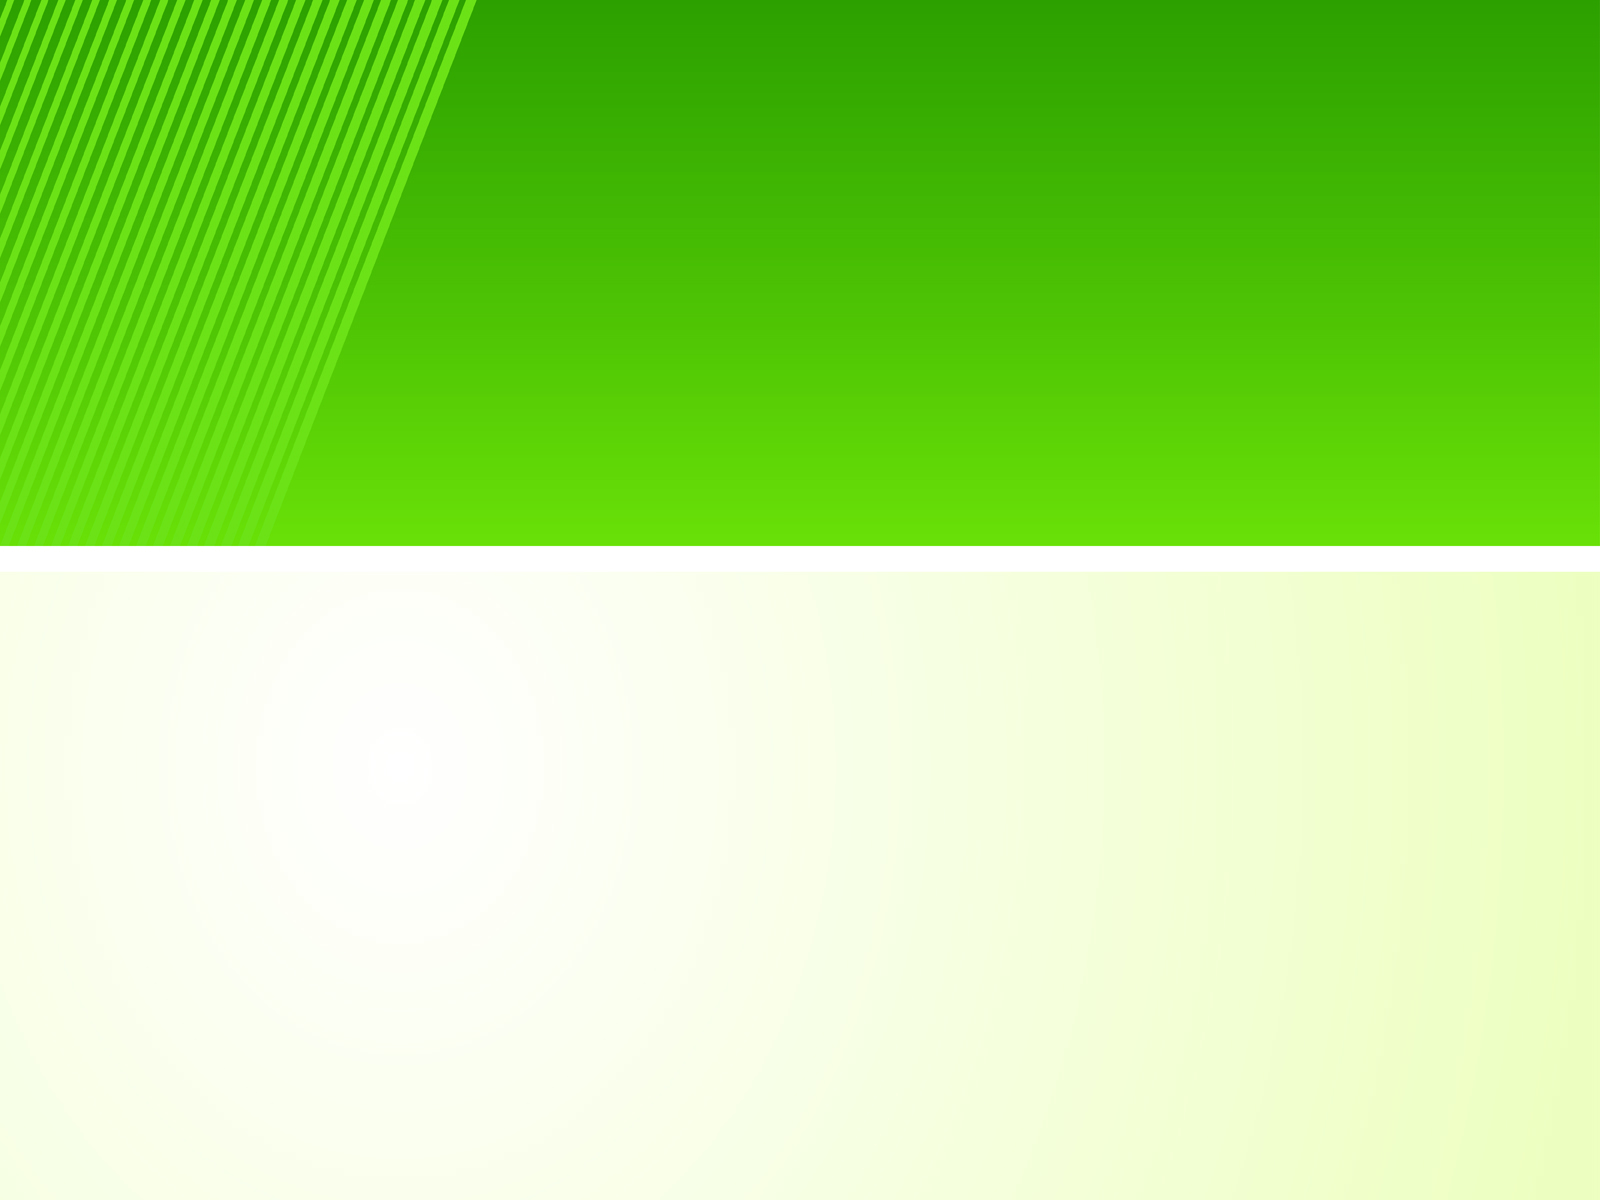 green business design ppt backgrounds - abstract, green, Powerpoint templates